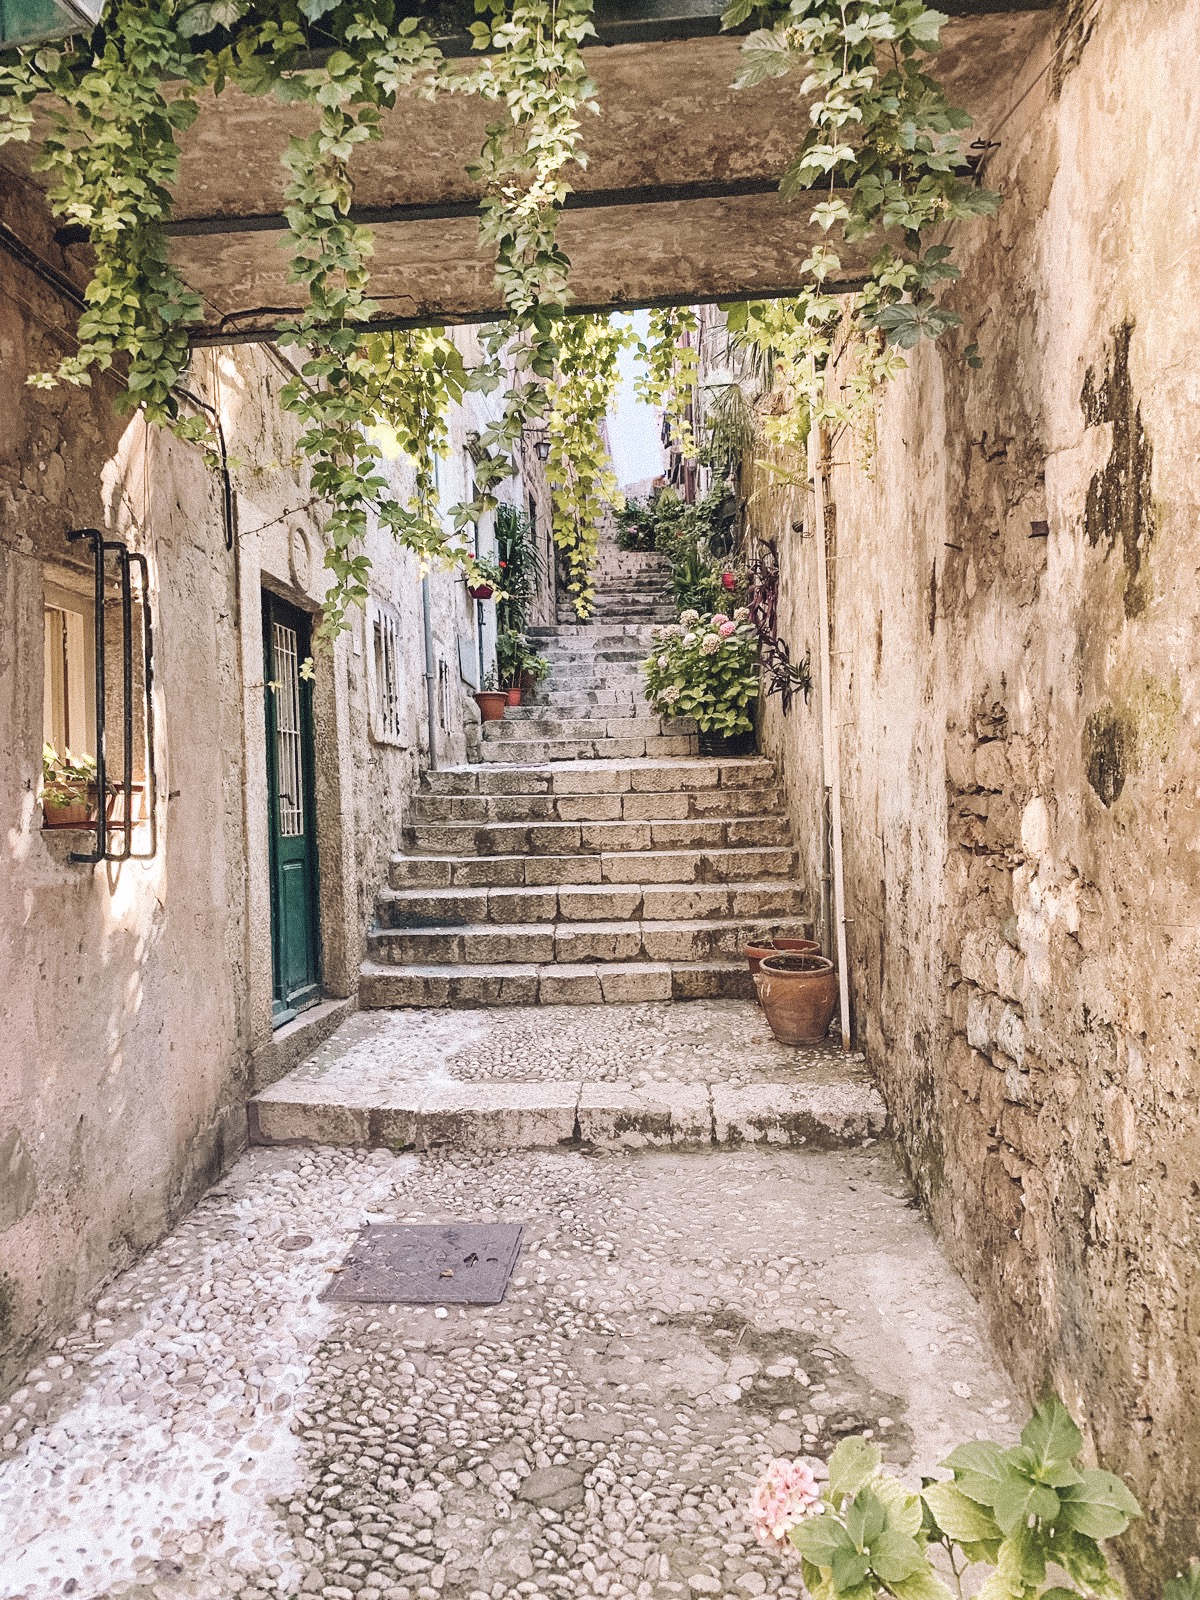 The charming steps to our Air BnB in Dubrovnik. Quite literally located a few steps away from the famous 'Shame' steps. (Anyone a GOT fan? We know you'll get it!)  Link: